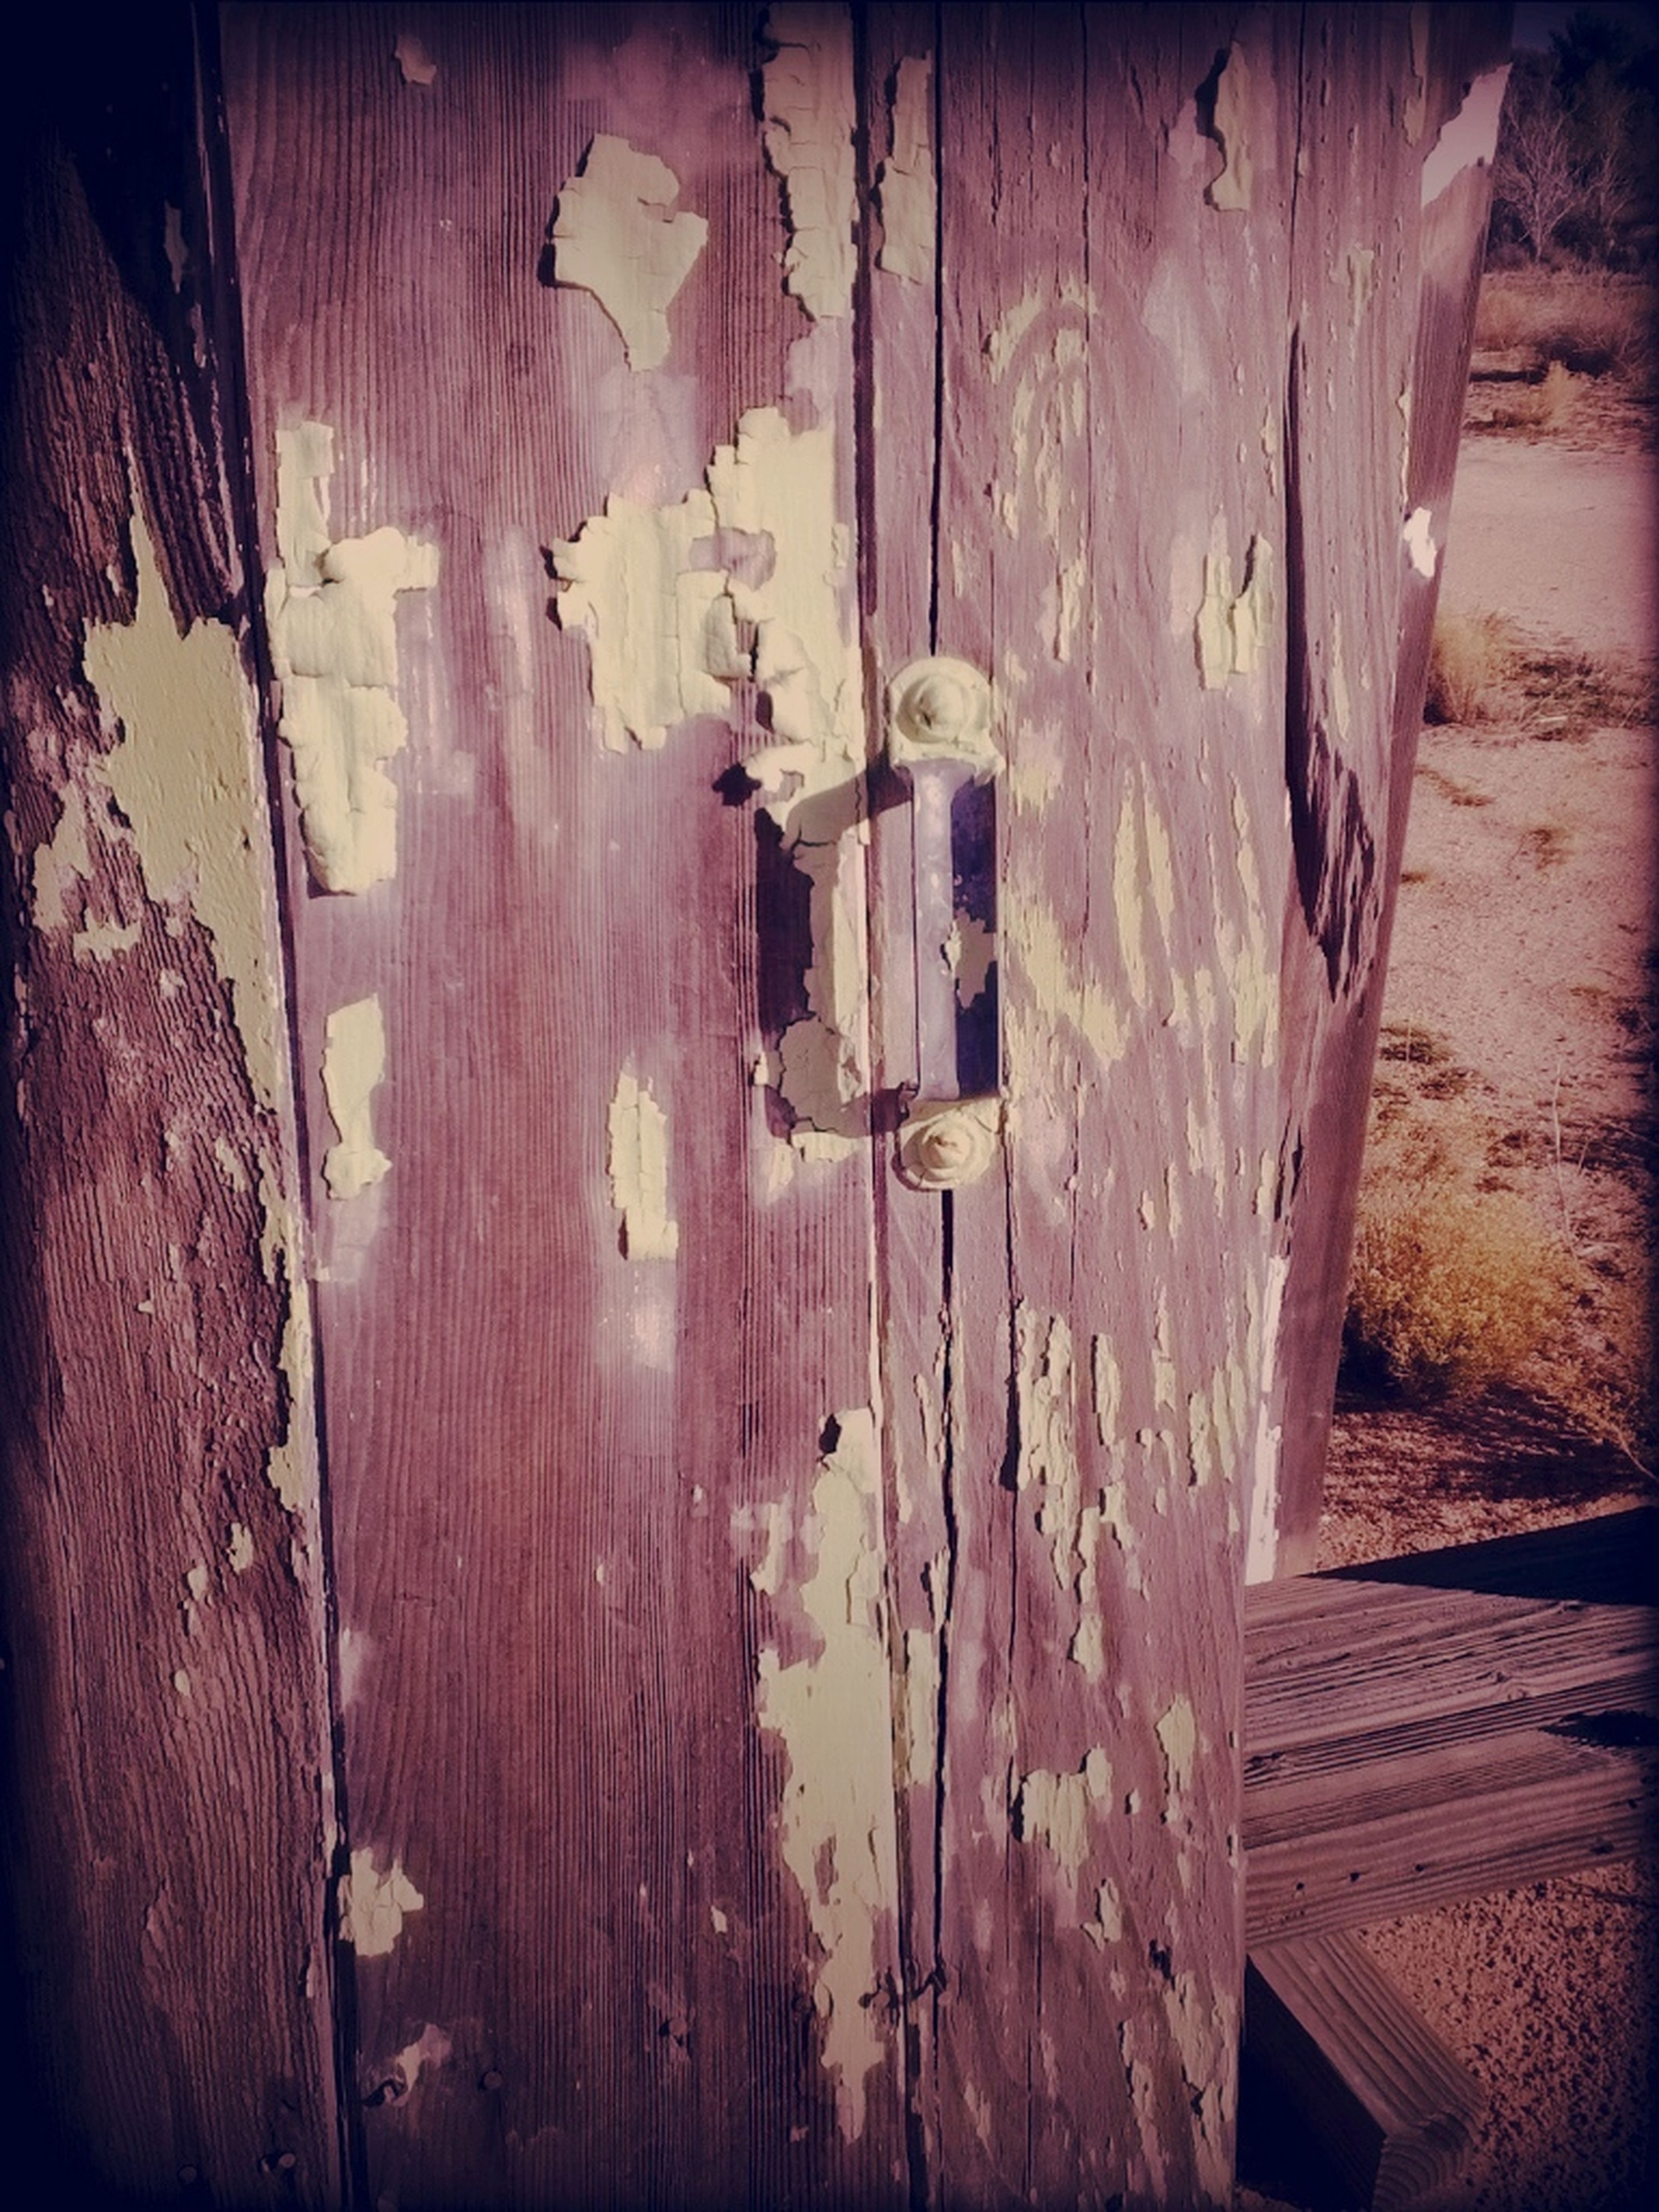 built structure, architecture, weathered, wood - material, old, abandoned, house, building exterior, damaged, door, obsolete, run-down, deterioration, wooden, wall - building feature, wood, bad condition, wall, day, ruined